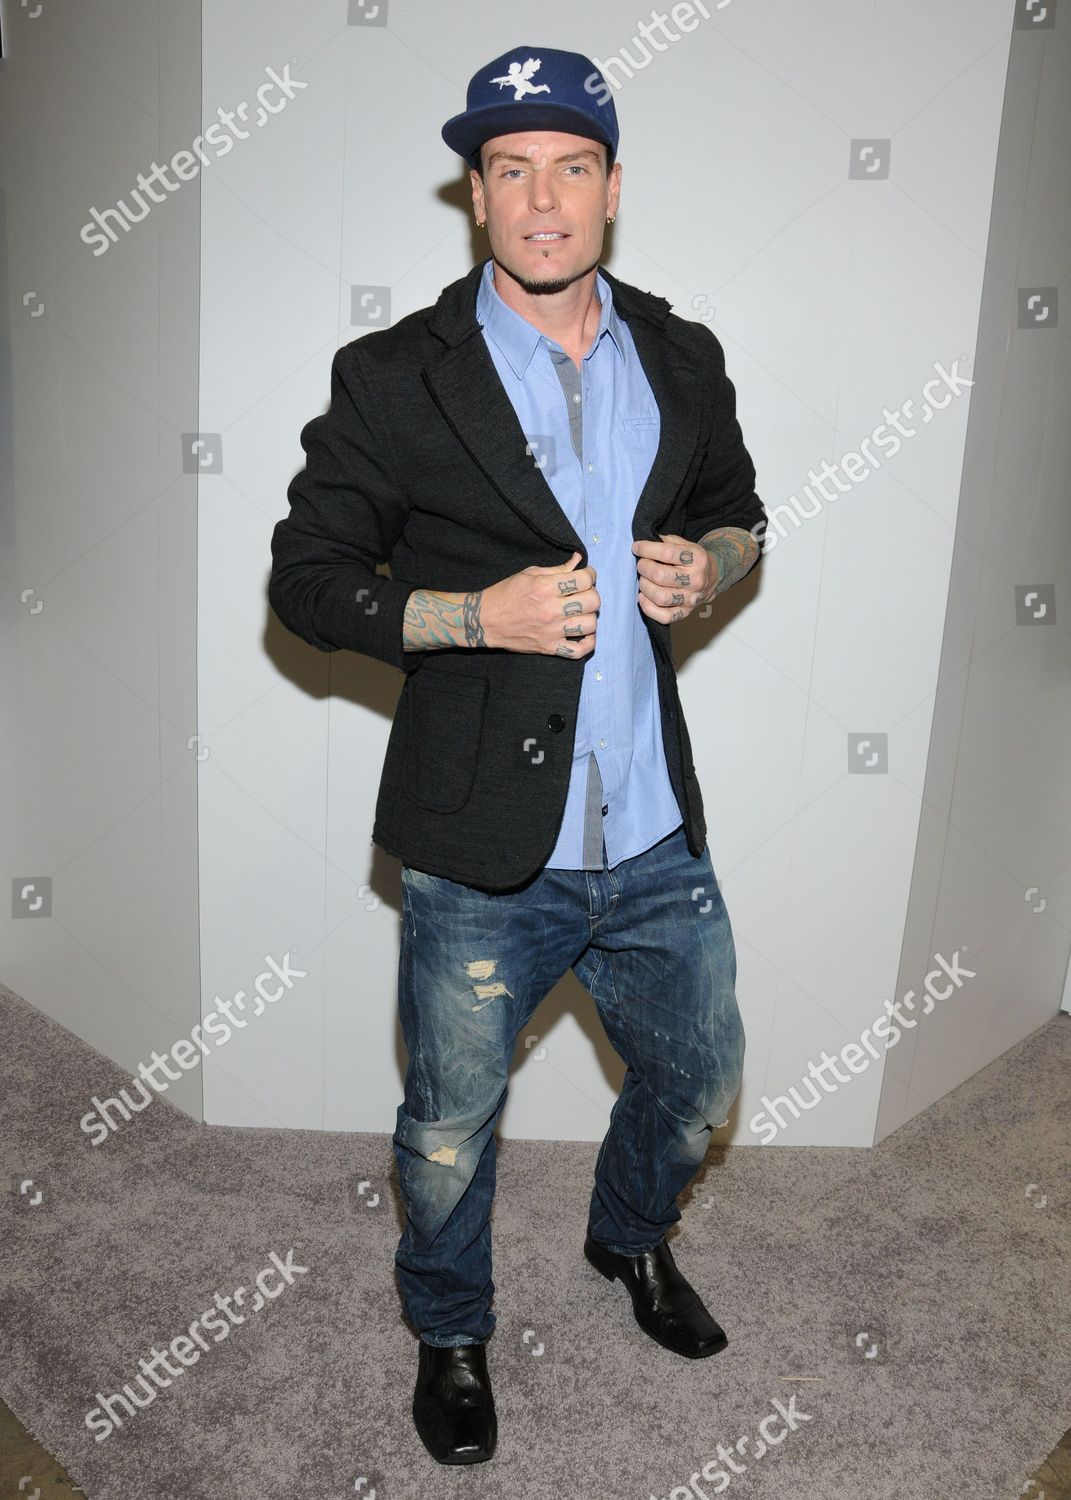 Vanilla Ice Editorial Stock Photo - Stock Image | Shutterstock